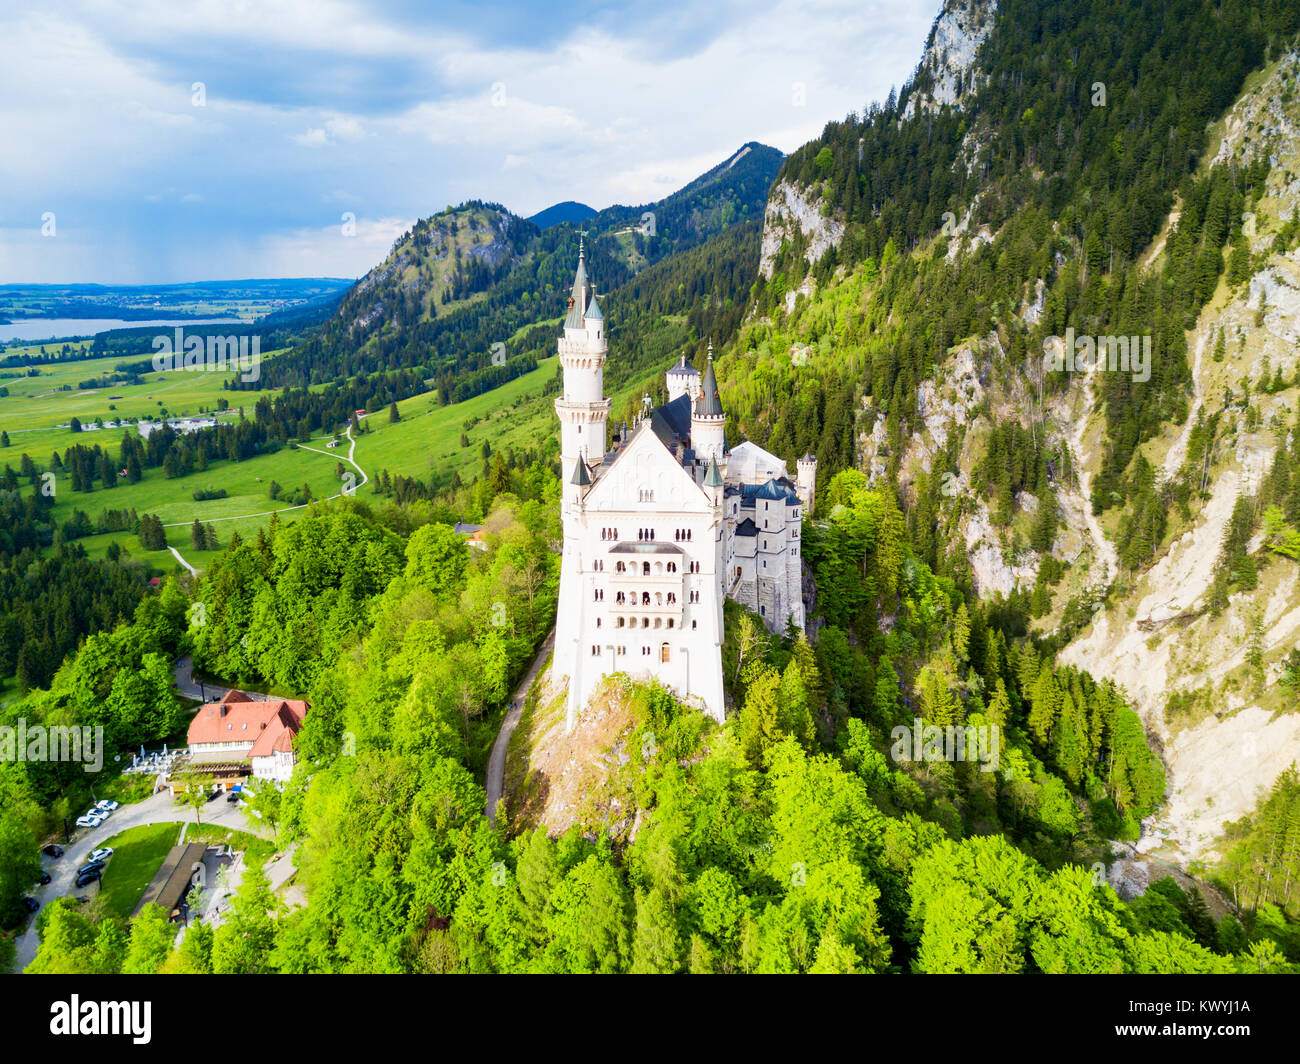 Schloss Neuschwanstein or New Swanstone Castle aerial panoramic view. Neuschwanstein Castle is a Romanesque Revival - Stock Image